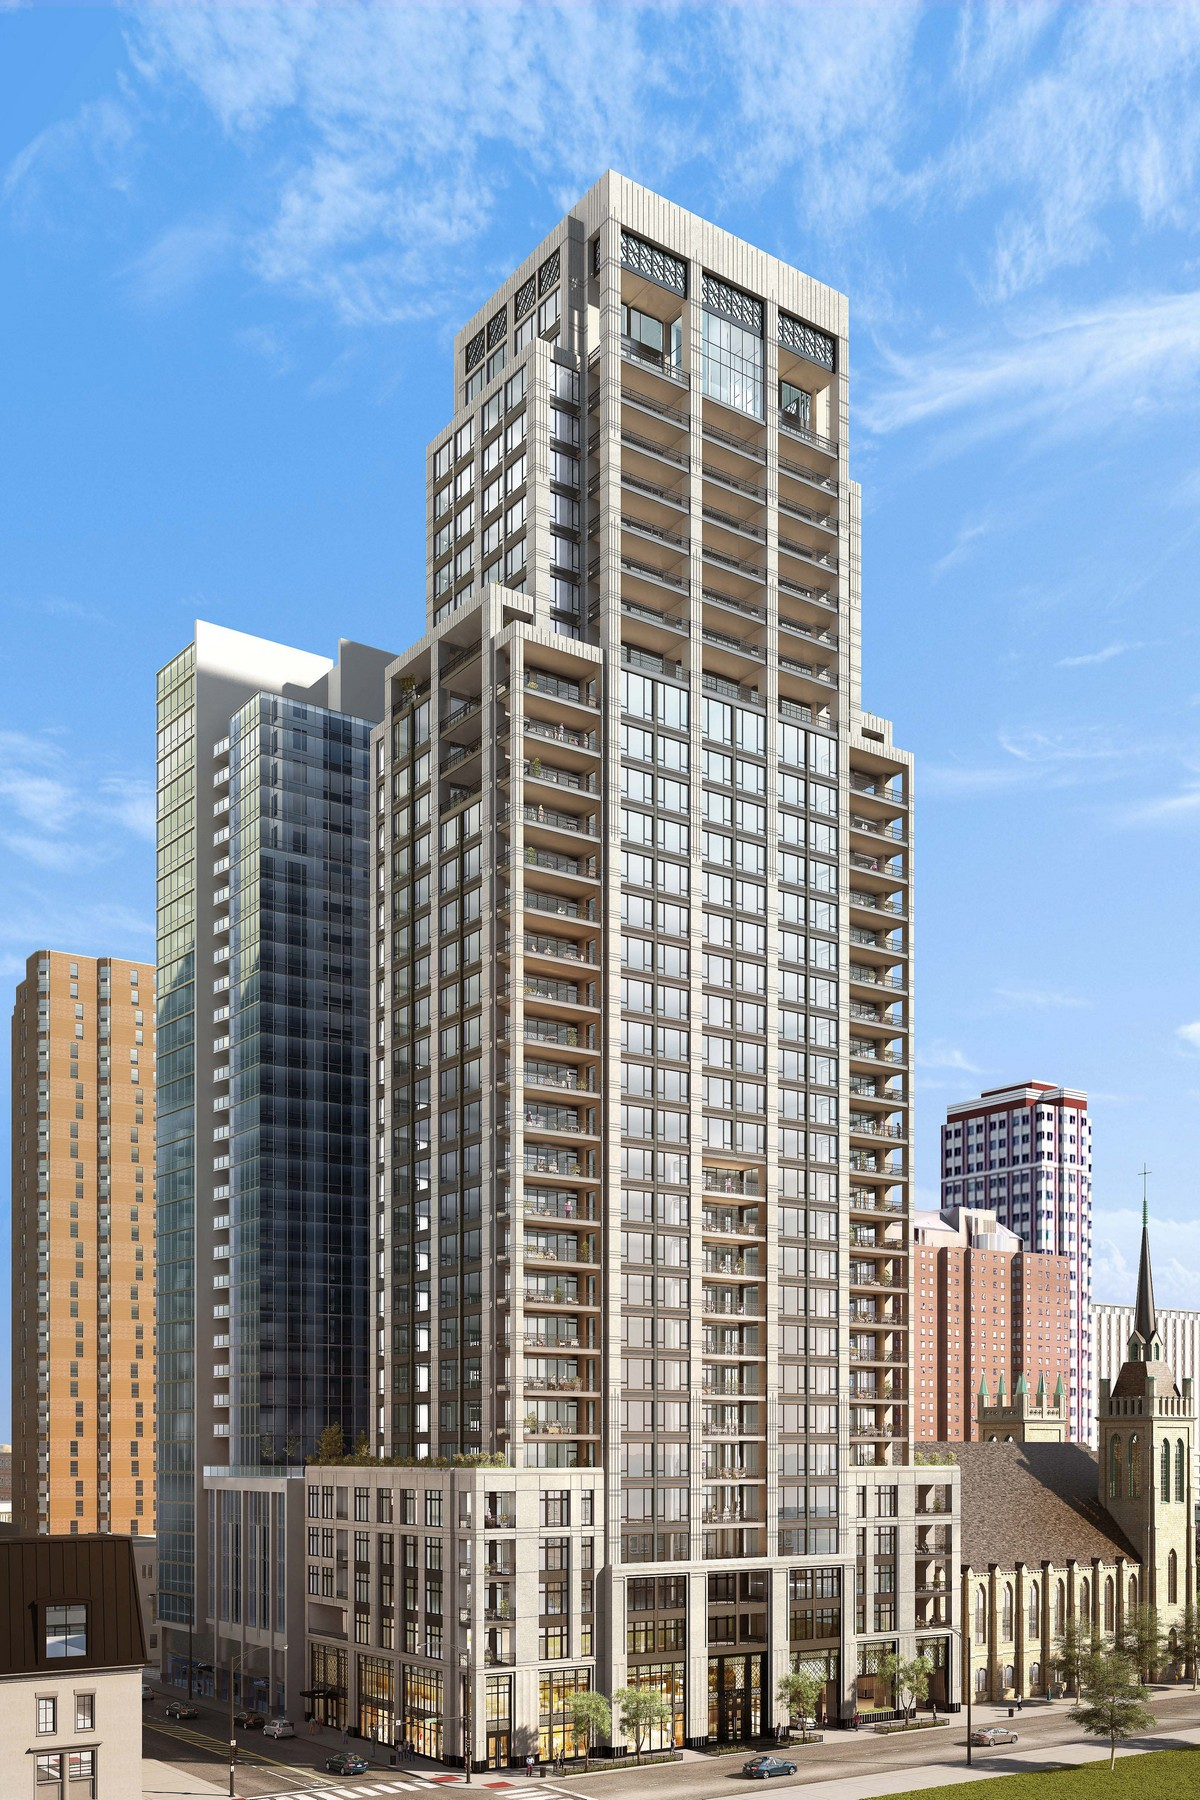 Кондоминиум для того Продажа на The Gold Coast's Newest and Finest Building 9 W Walton Street Unit 504 Chicago, Иллинойс, 60610 Соединенные Штаты